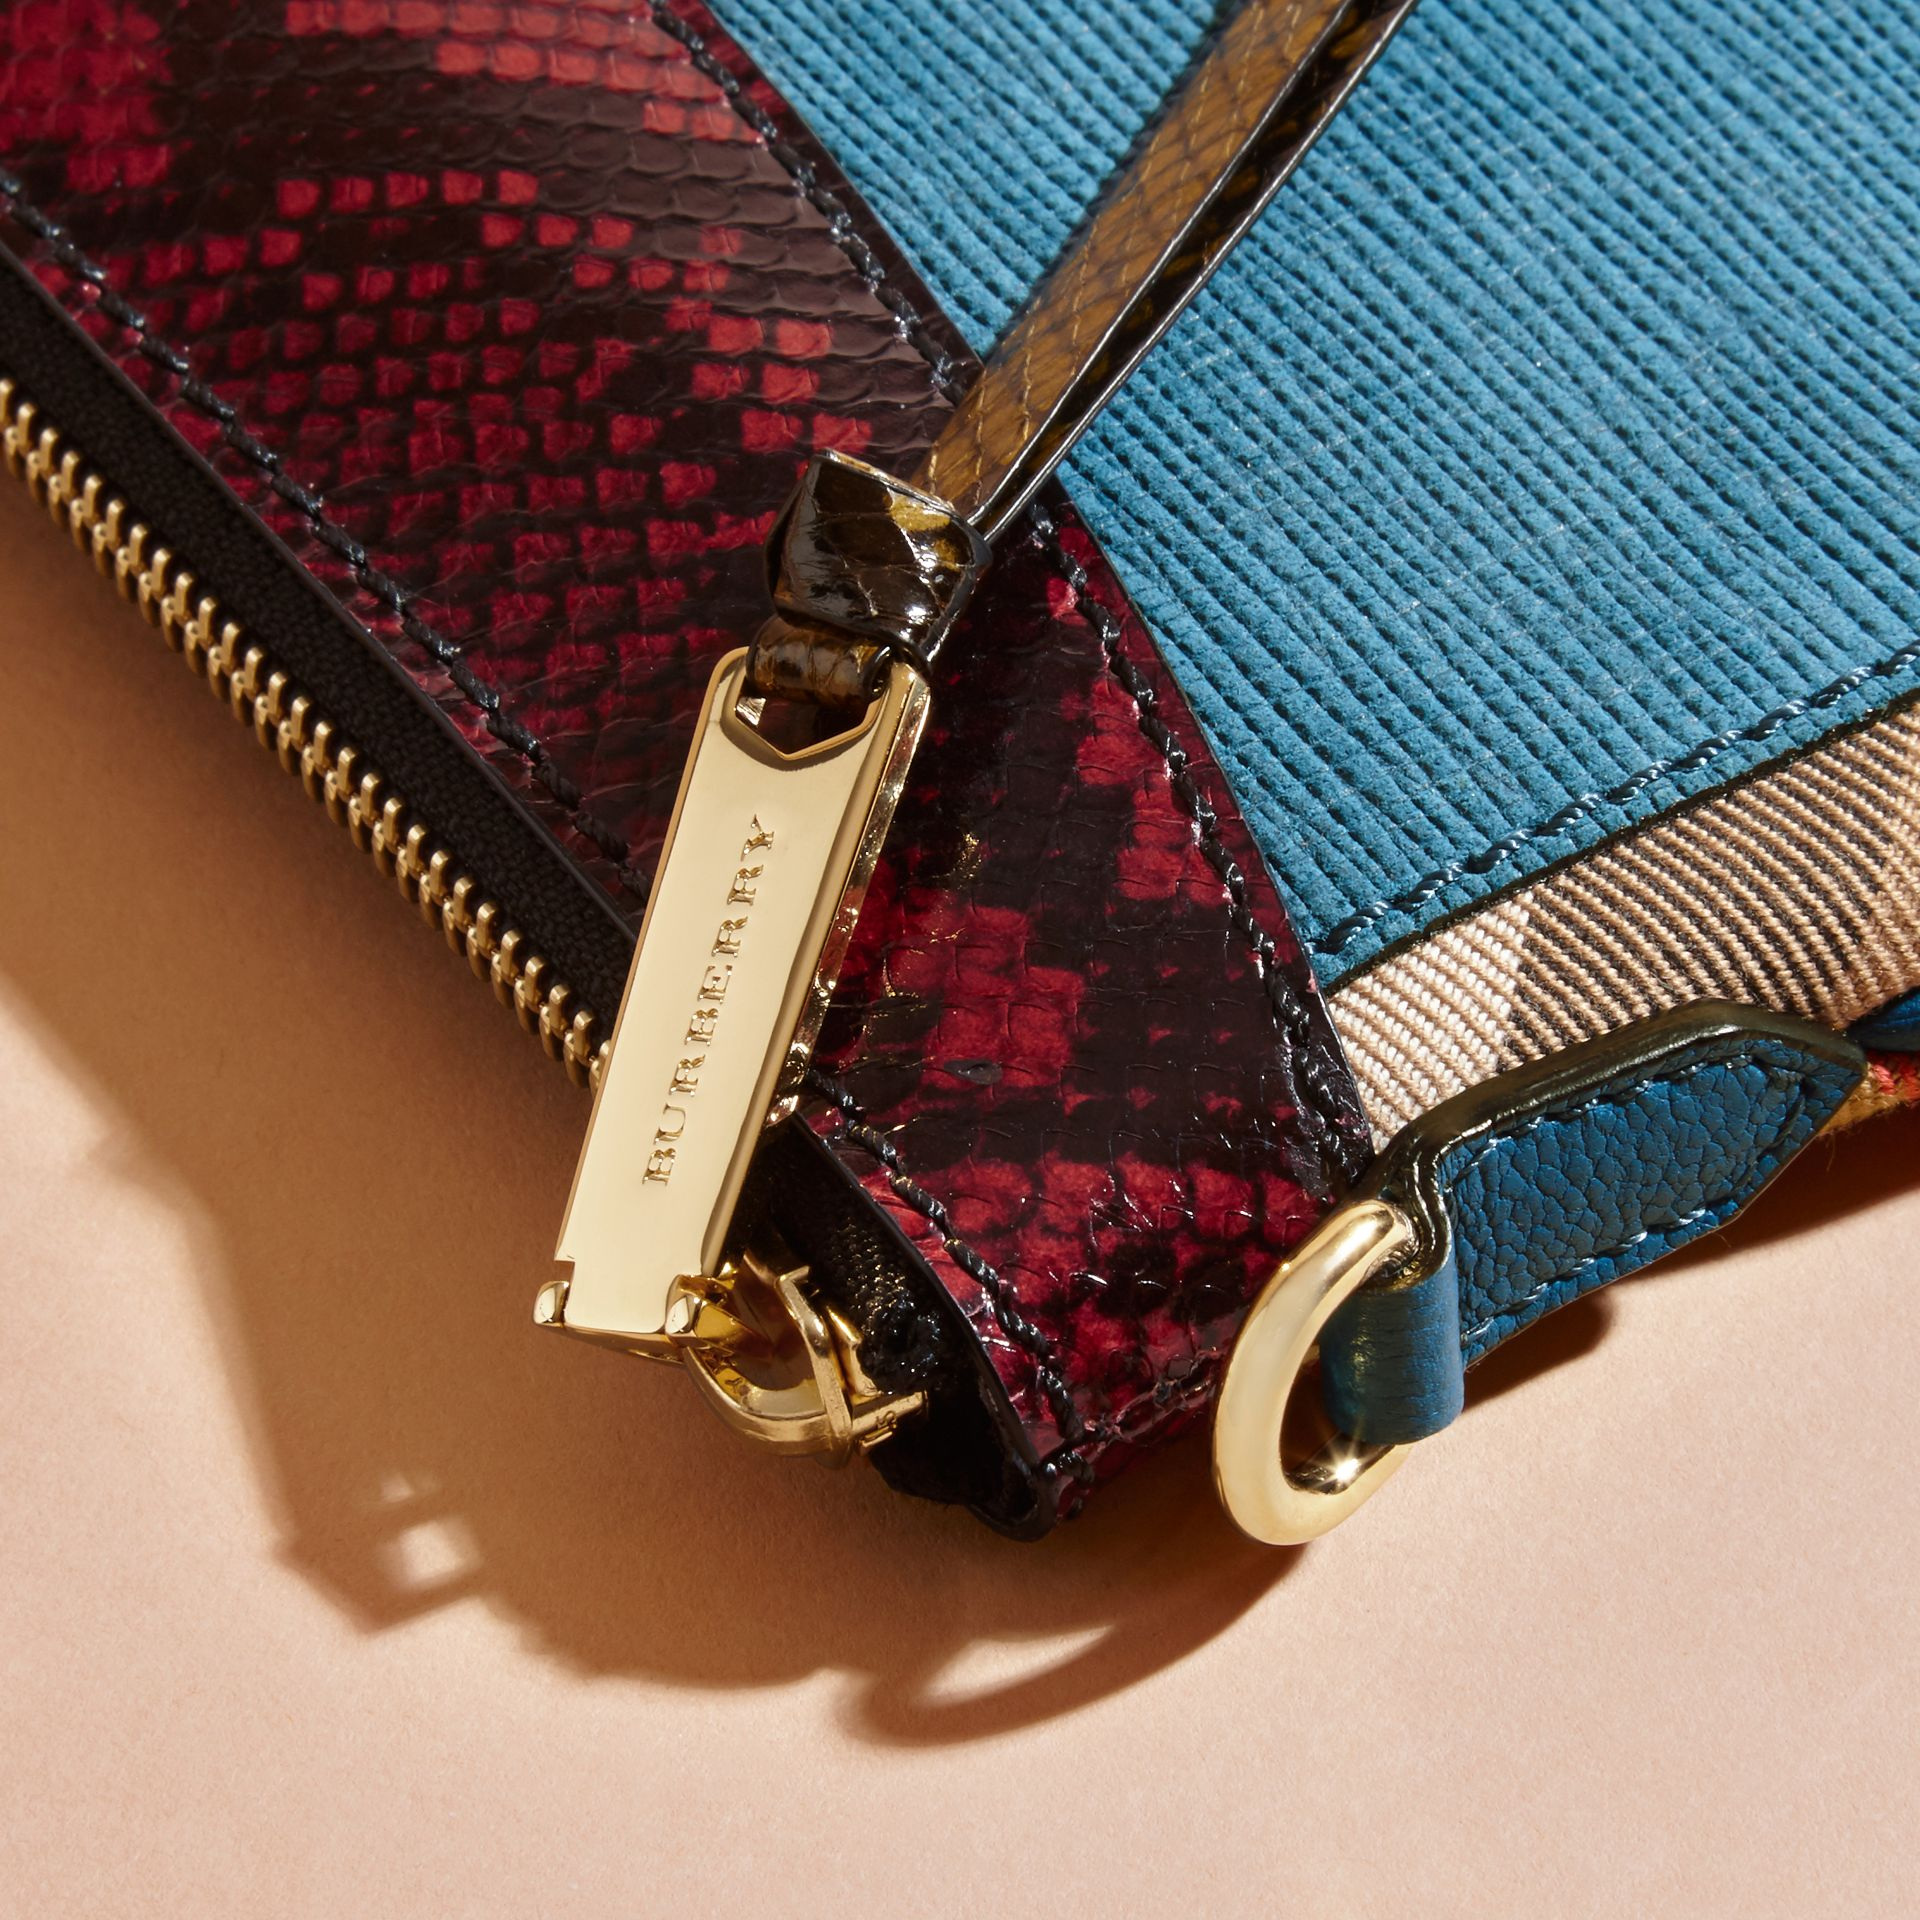 Leather, House Check and Snakeskin Clutch Bag in Peacock Blue - Women | Burberry - gallery image 2